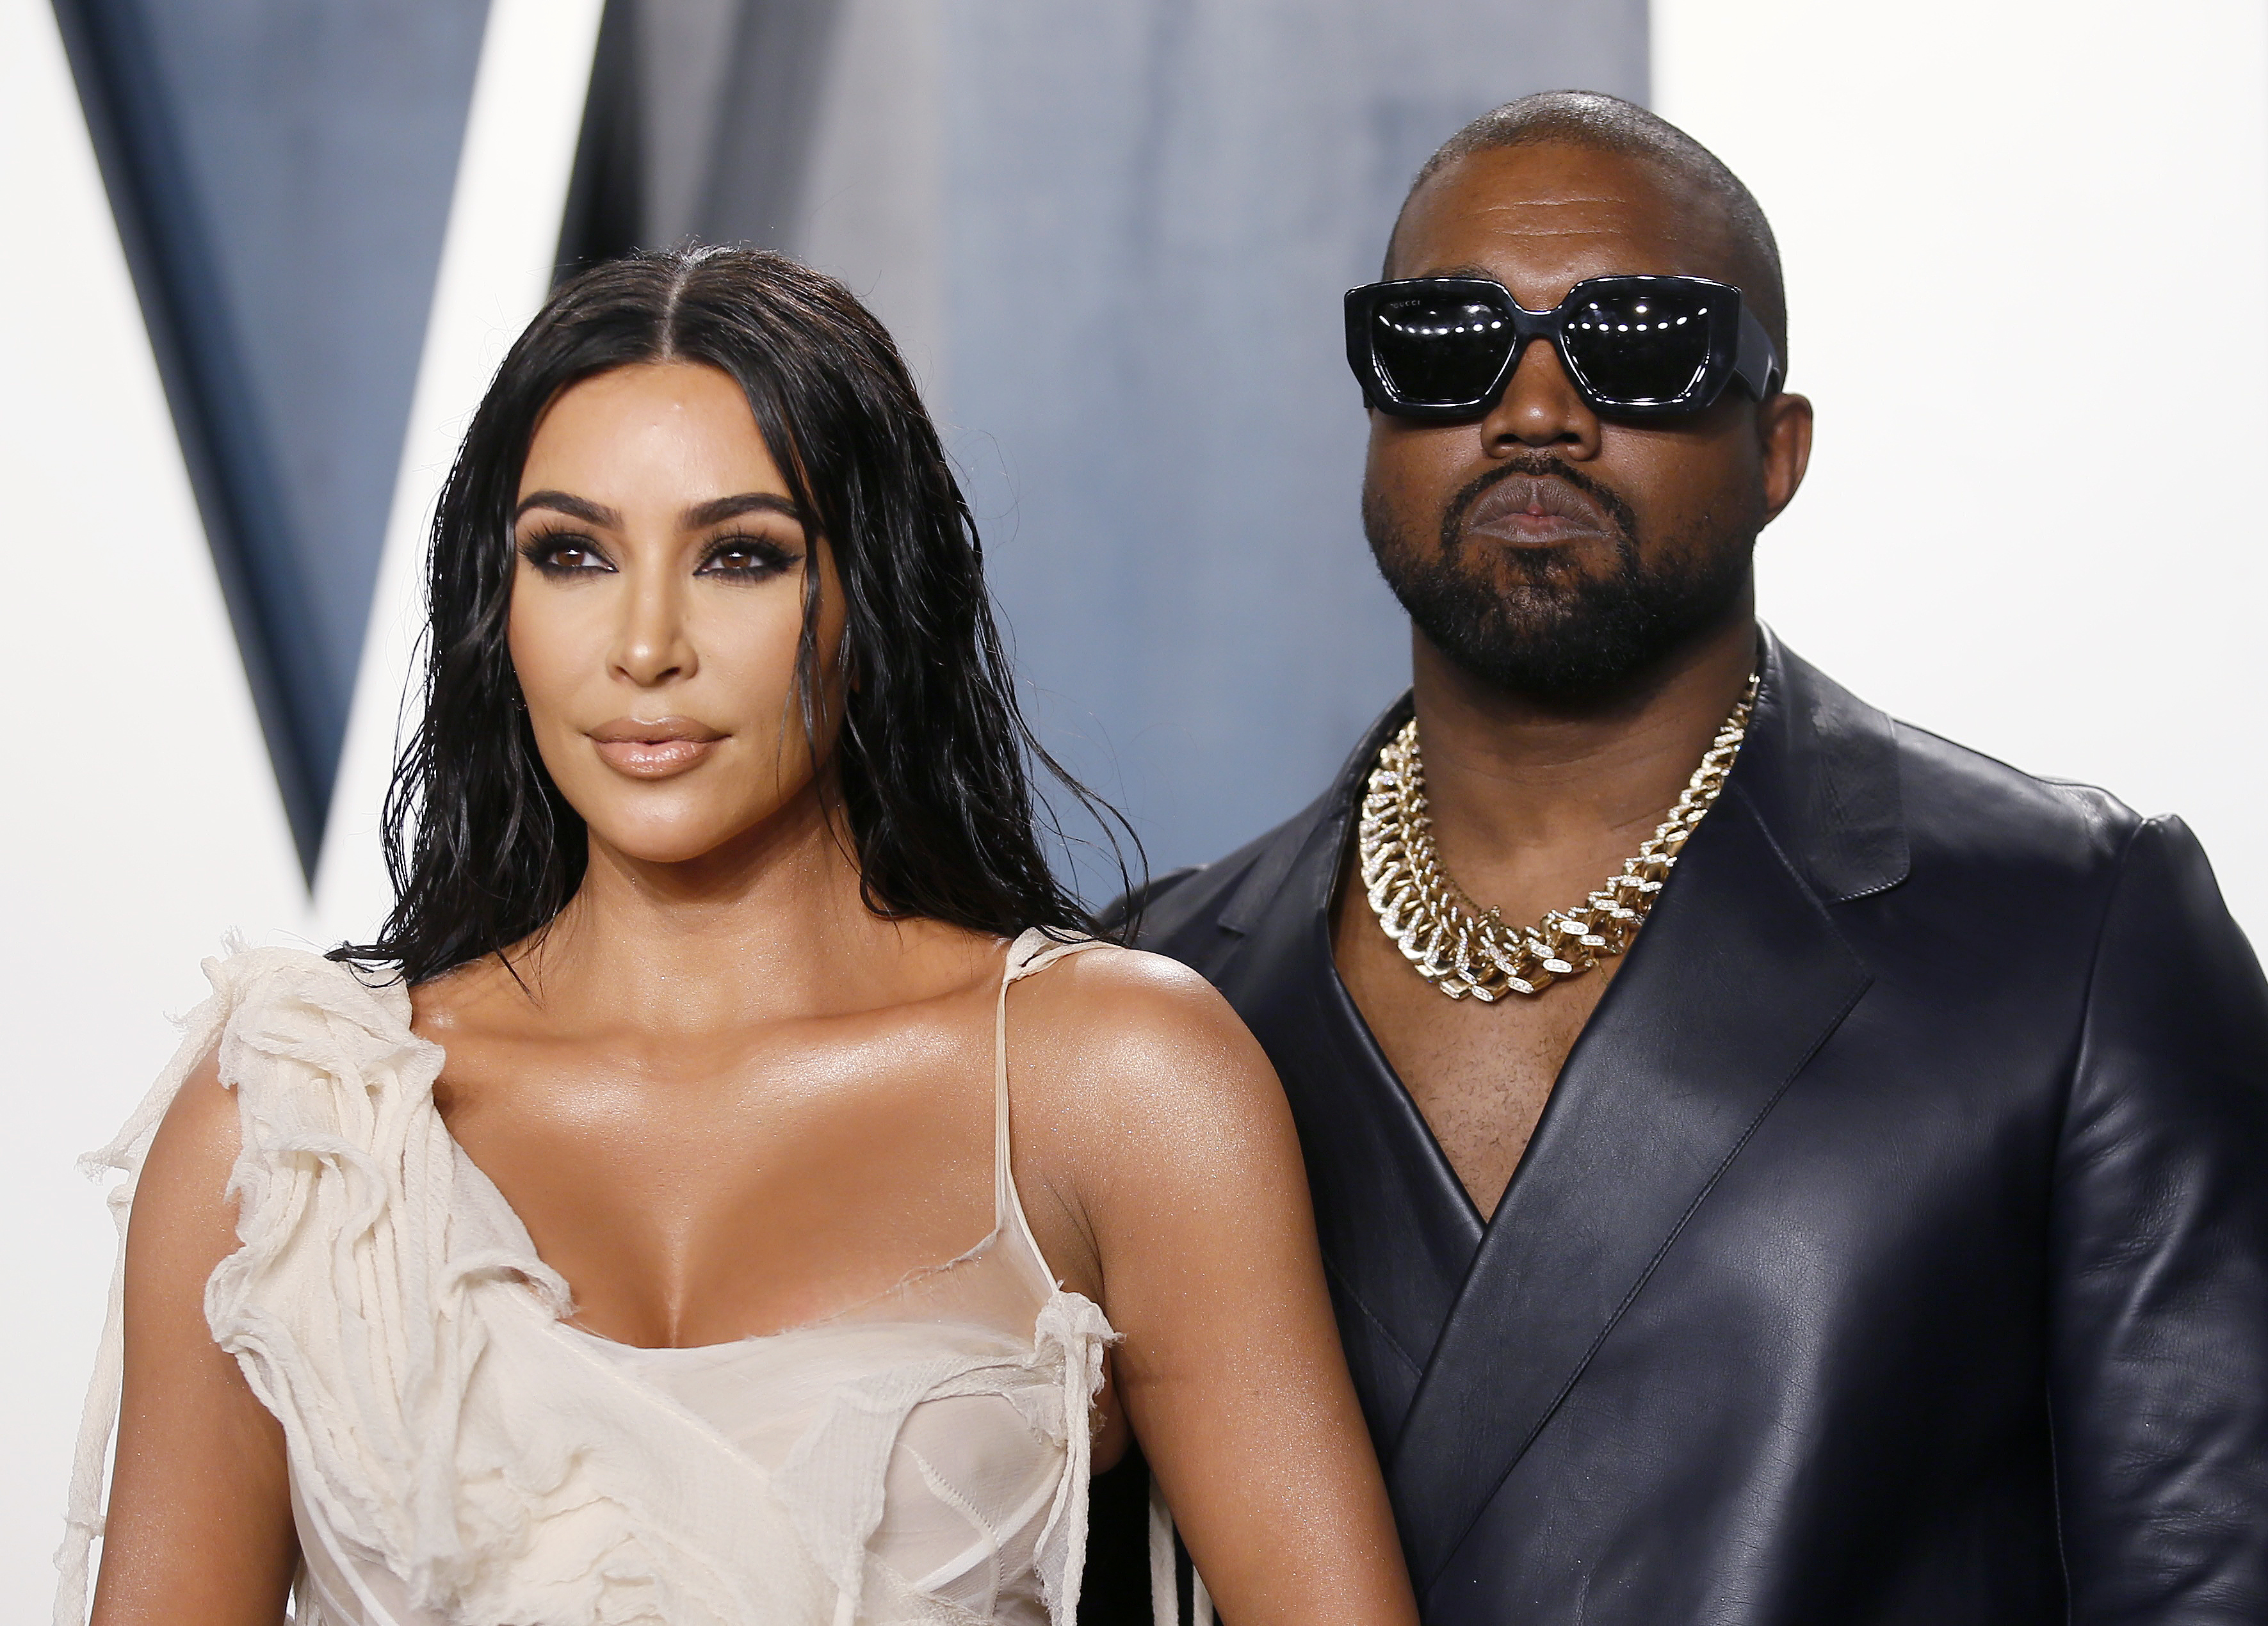 Kanye West says Kim Kardashian made him see this is a soul when they were considering abortion